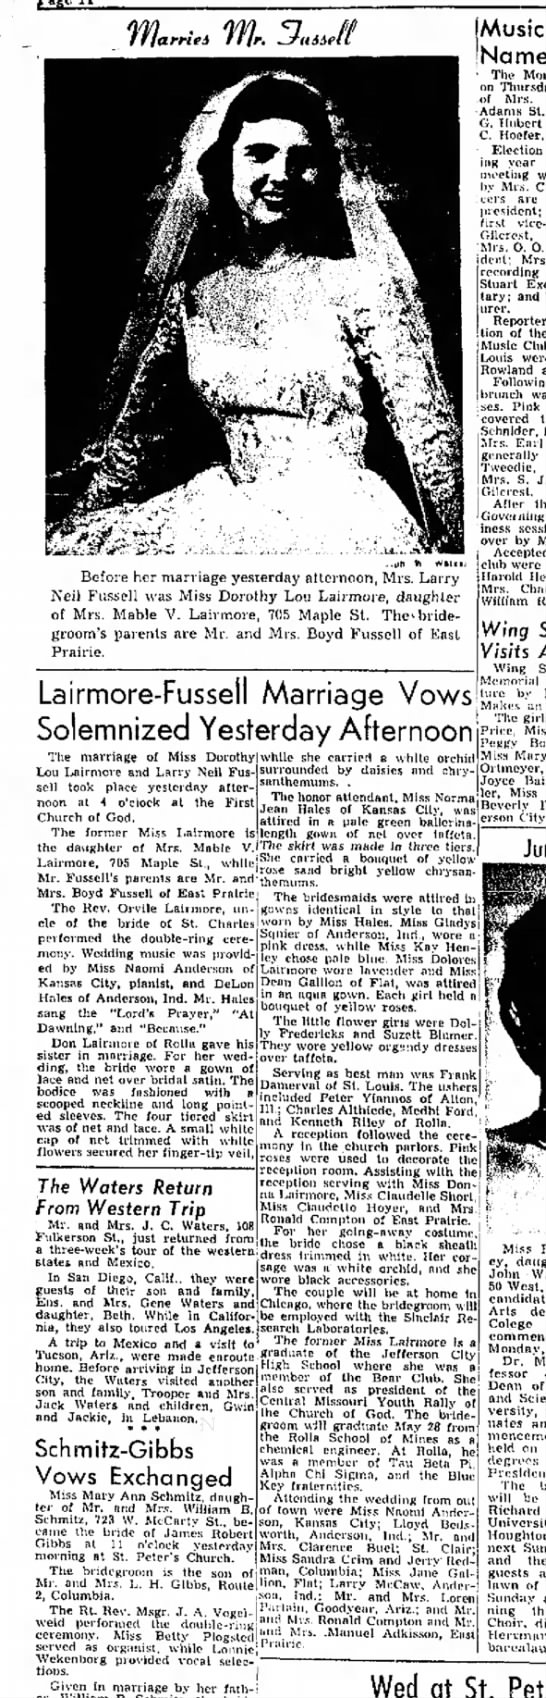 dorothy lairmore wedding - .. Before her marriage yesierday alternoon,...